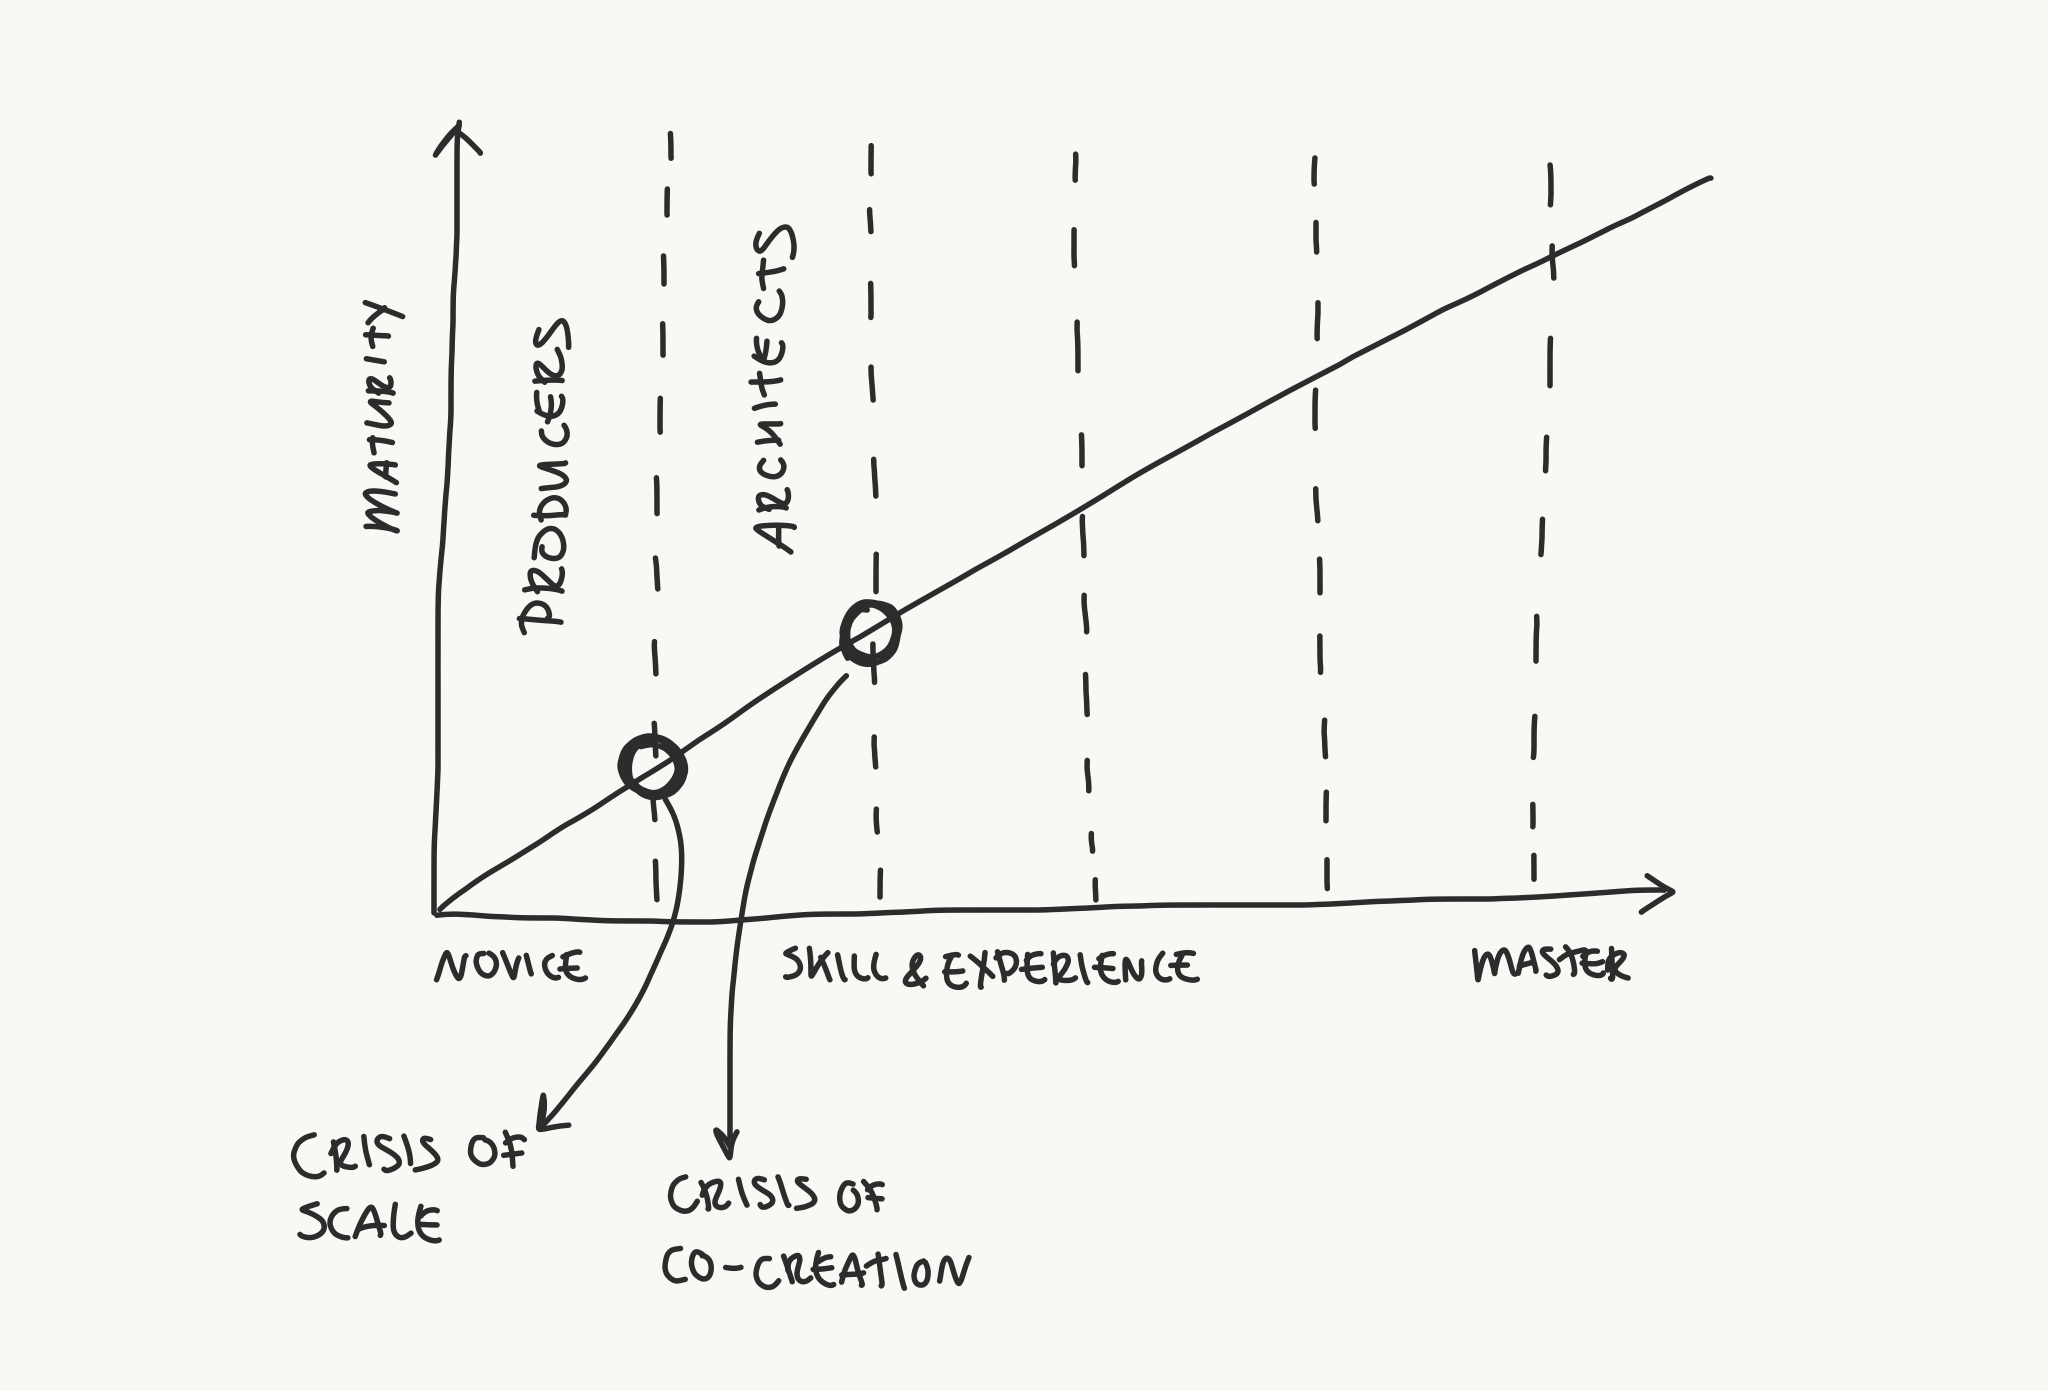 The (Developer's) Growth Model